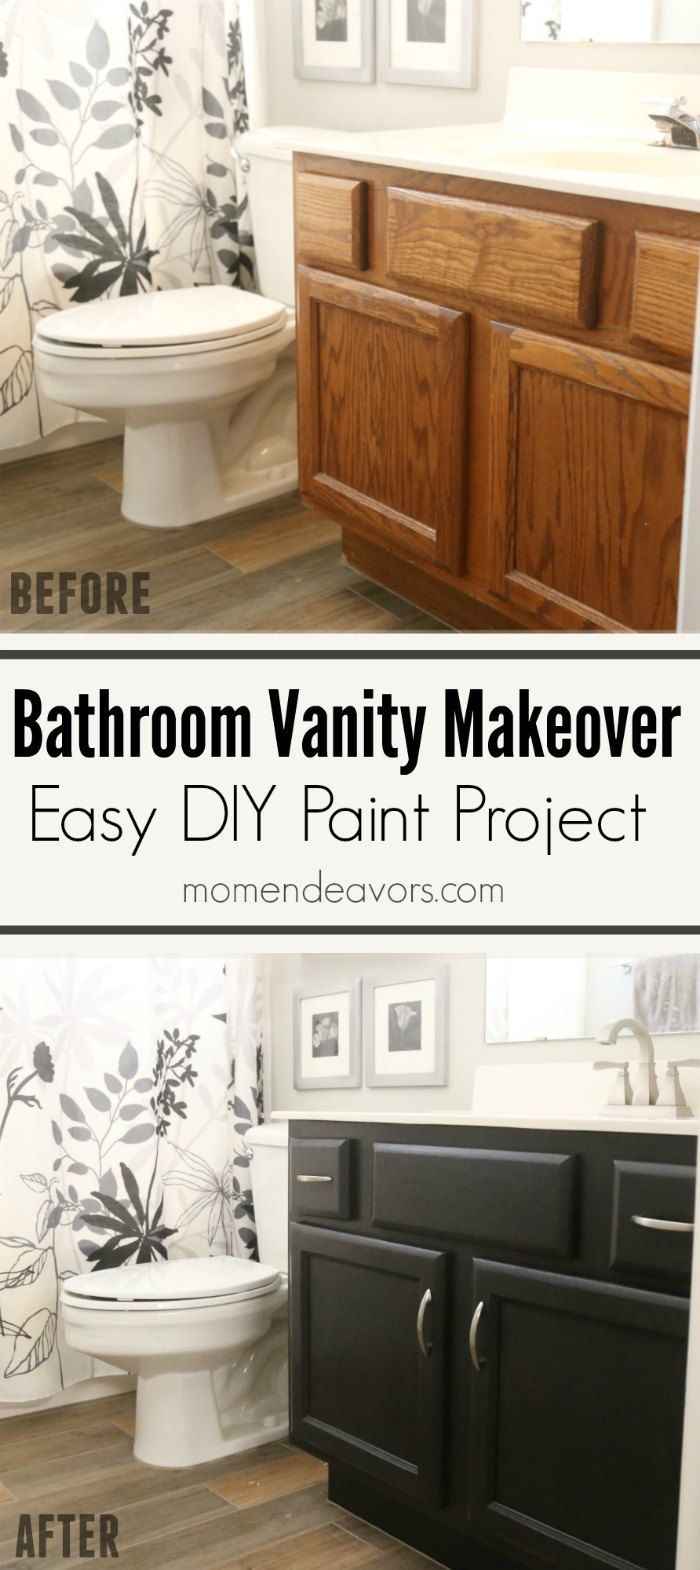 painted bathroom wall cabinets bathroom vanity makeover easy diy home paint project 24344